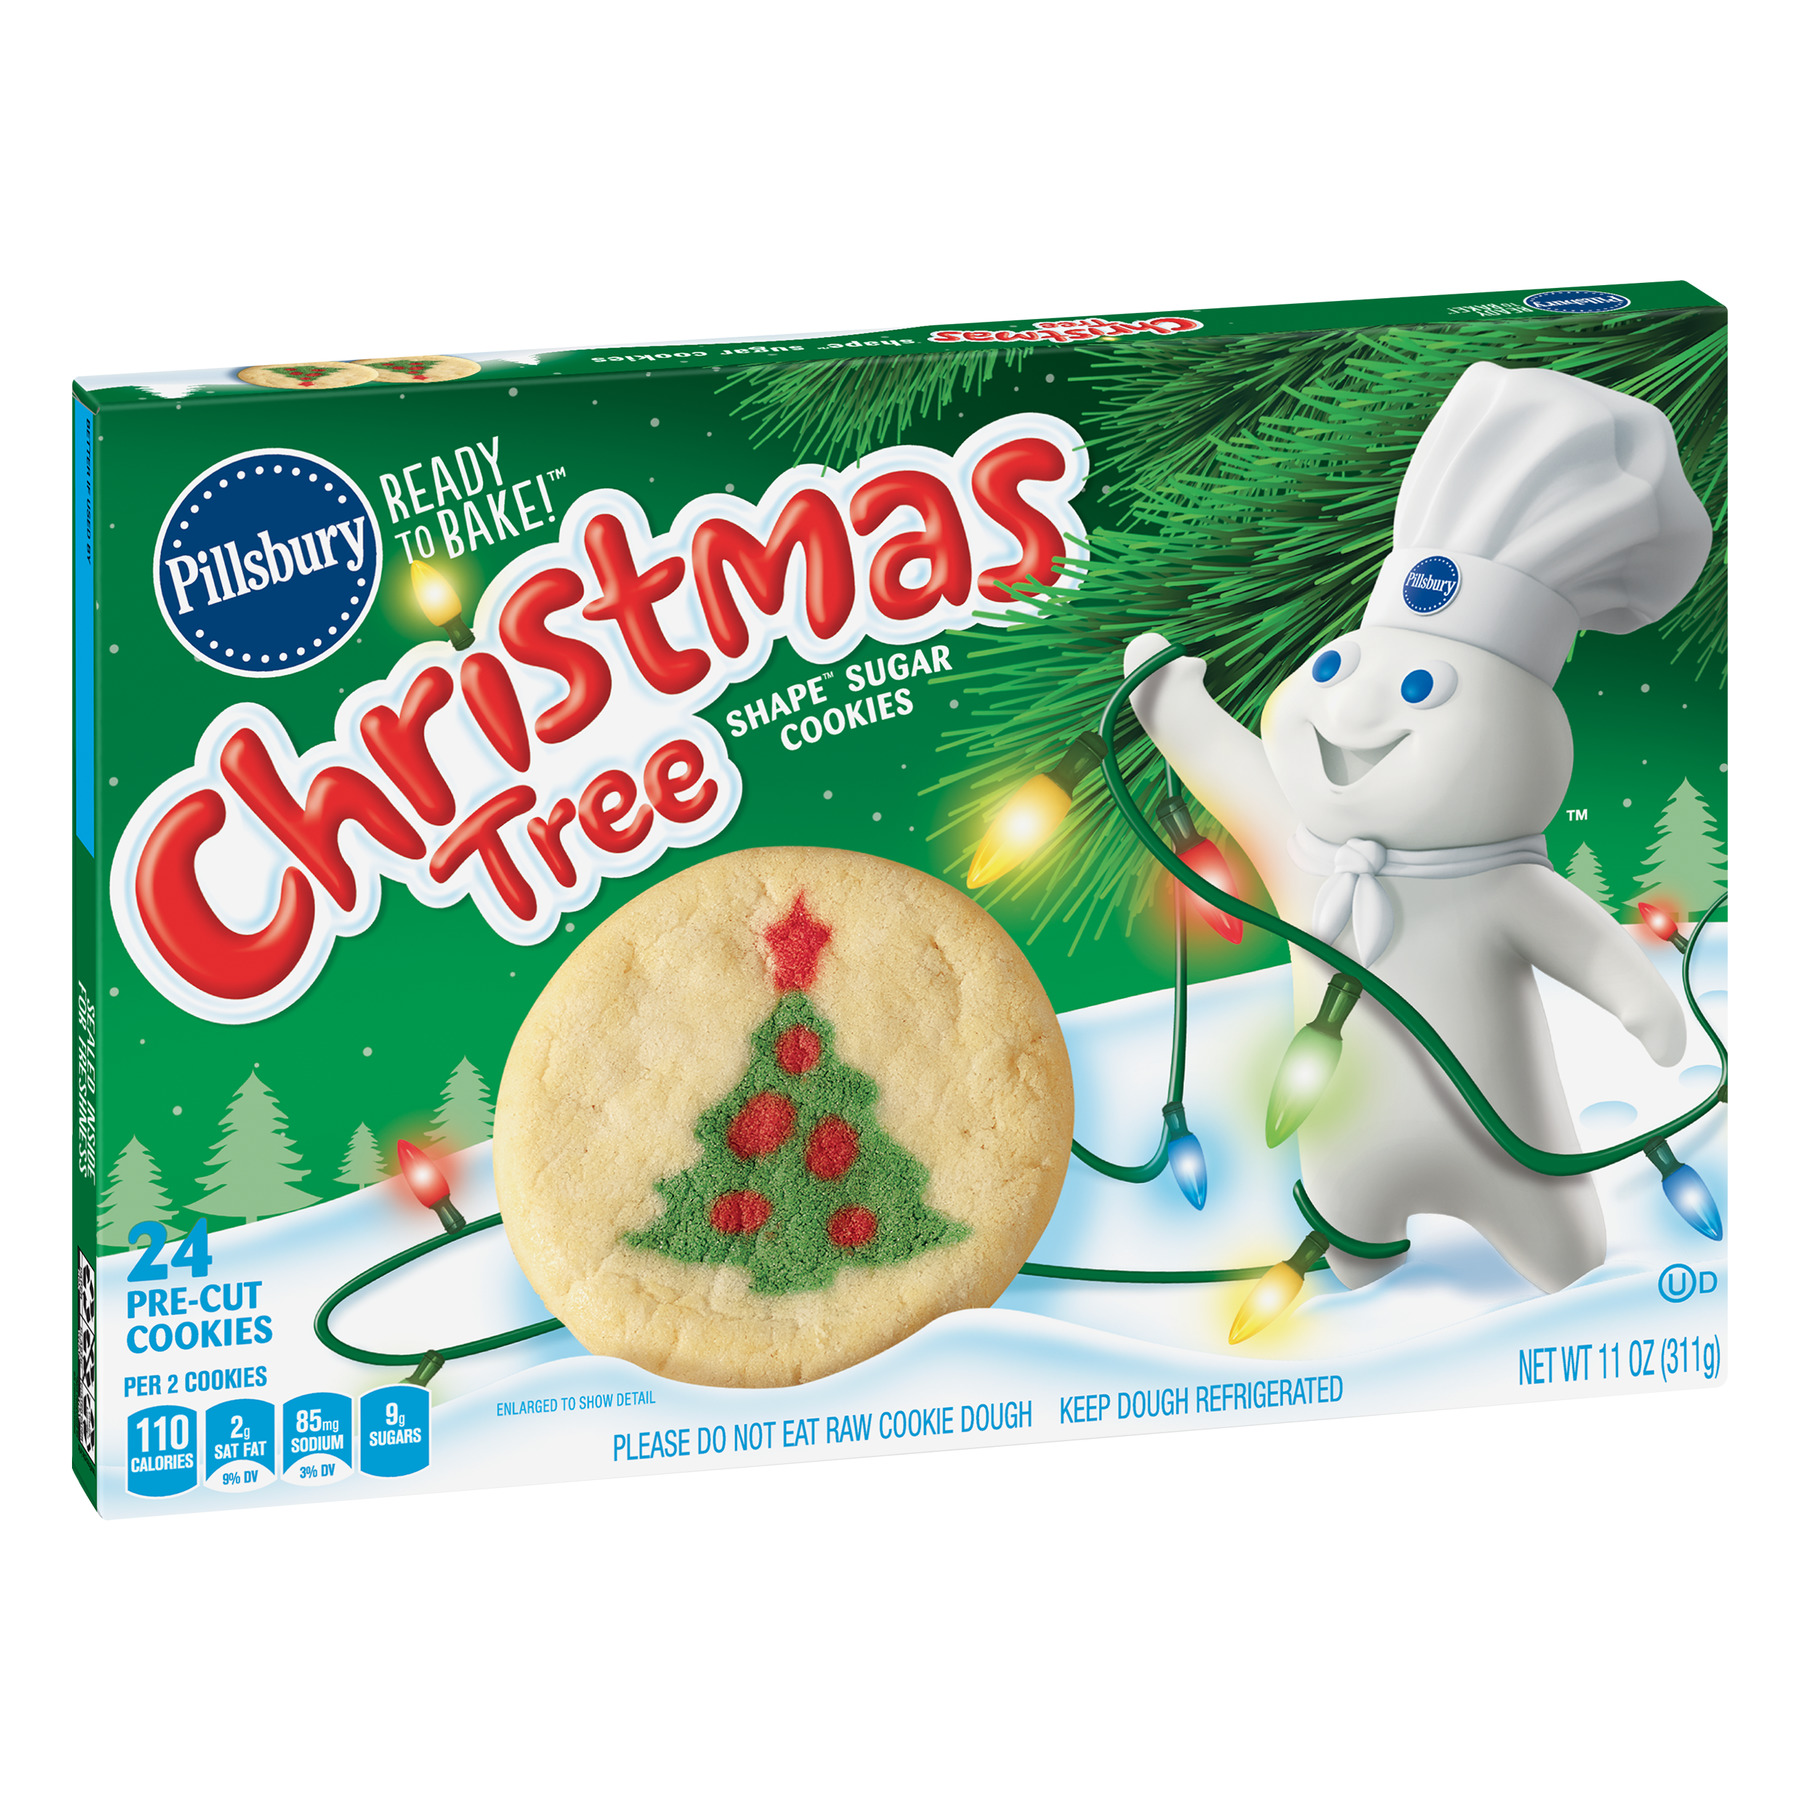 Pillsbury Ready to Bake Christmas Tree Shape Sugar Cookies